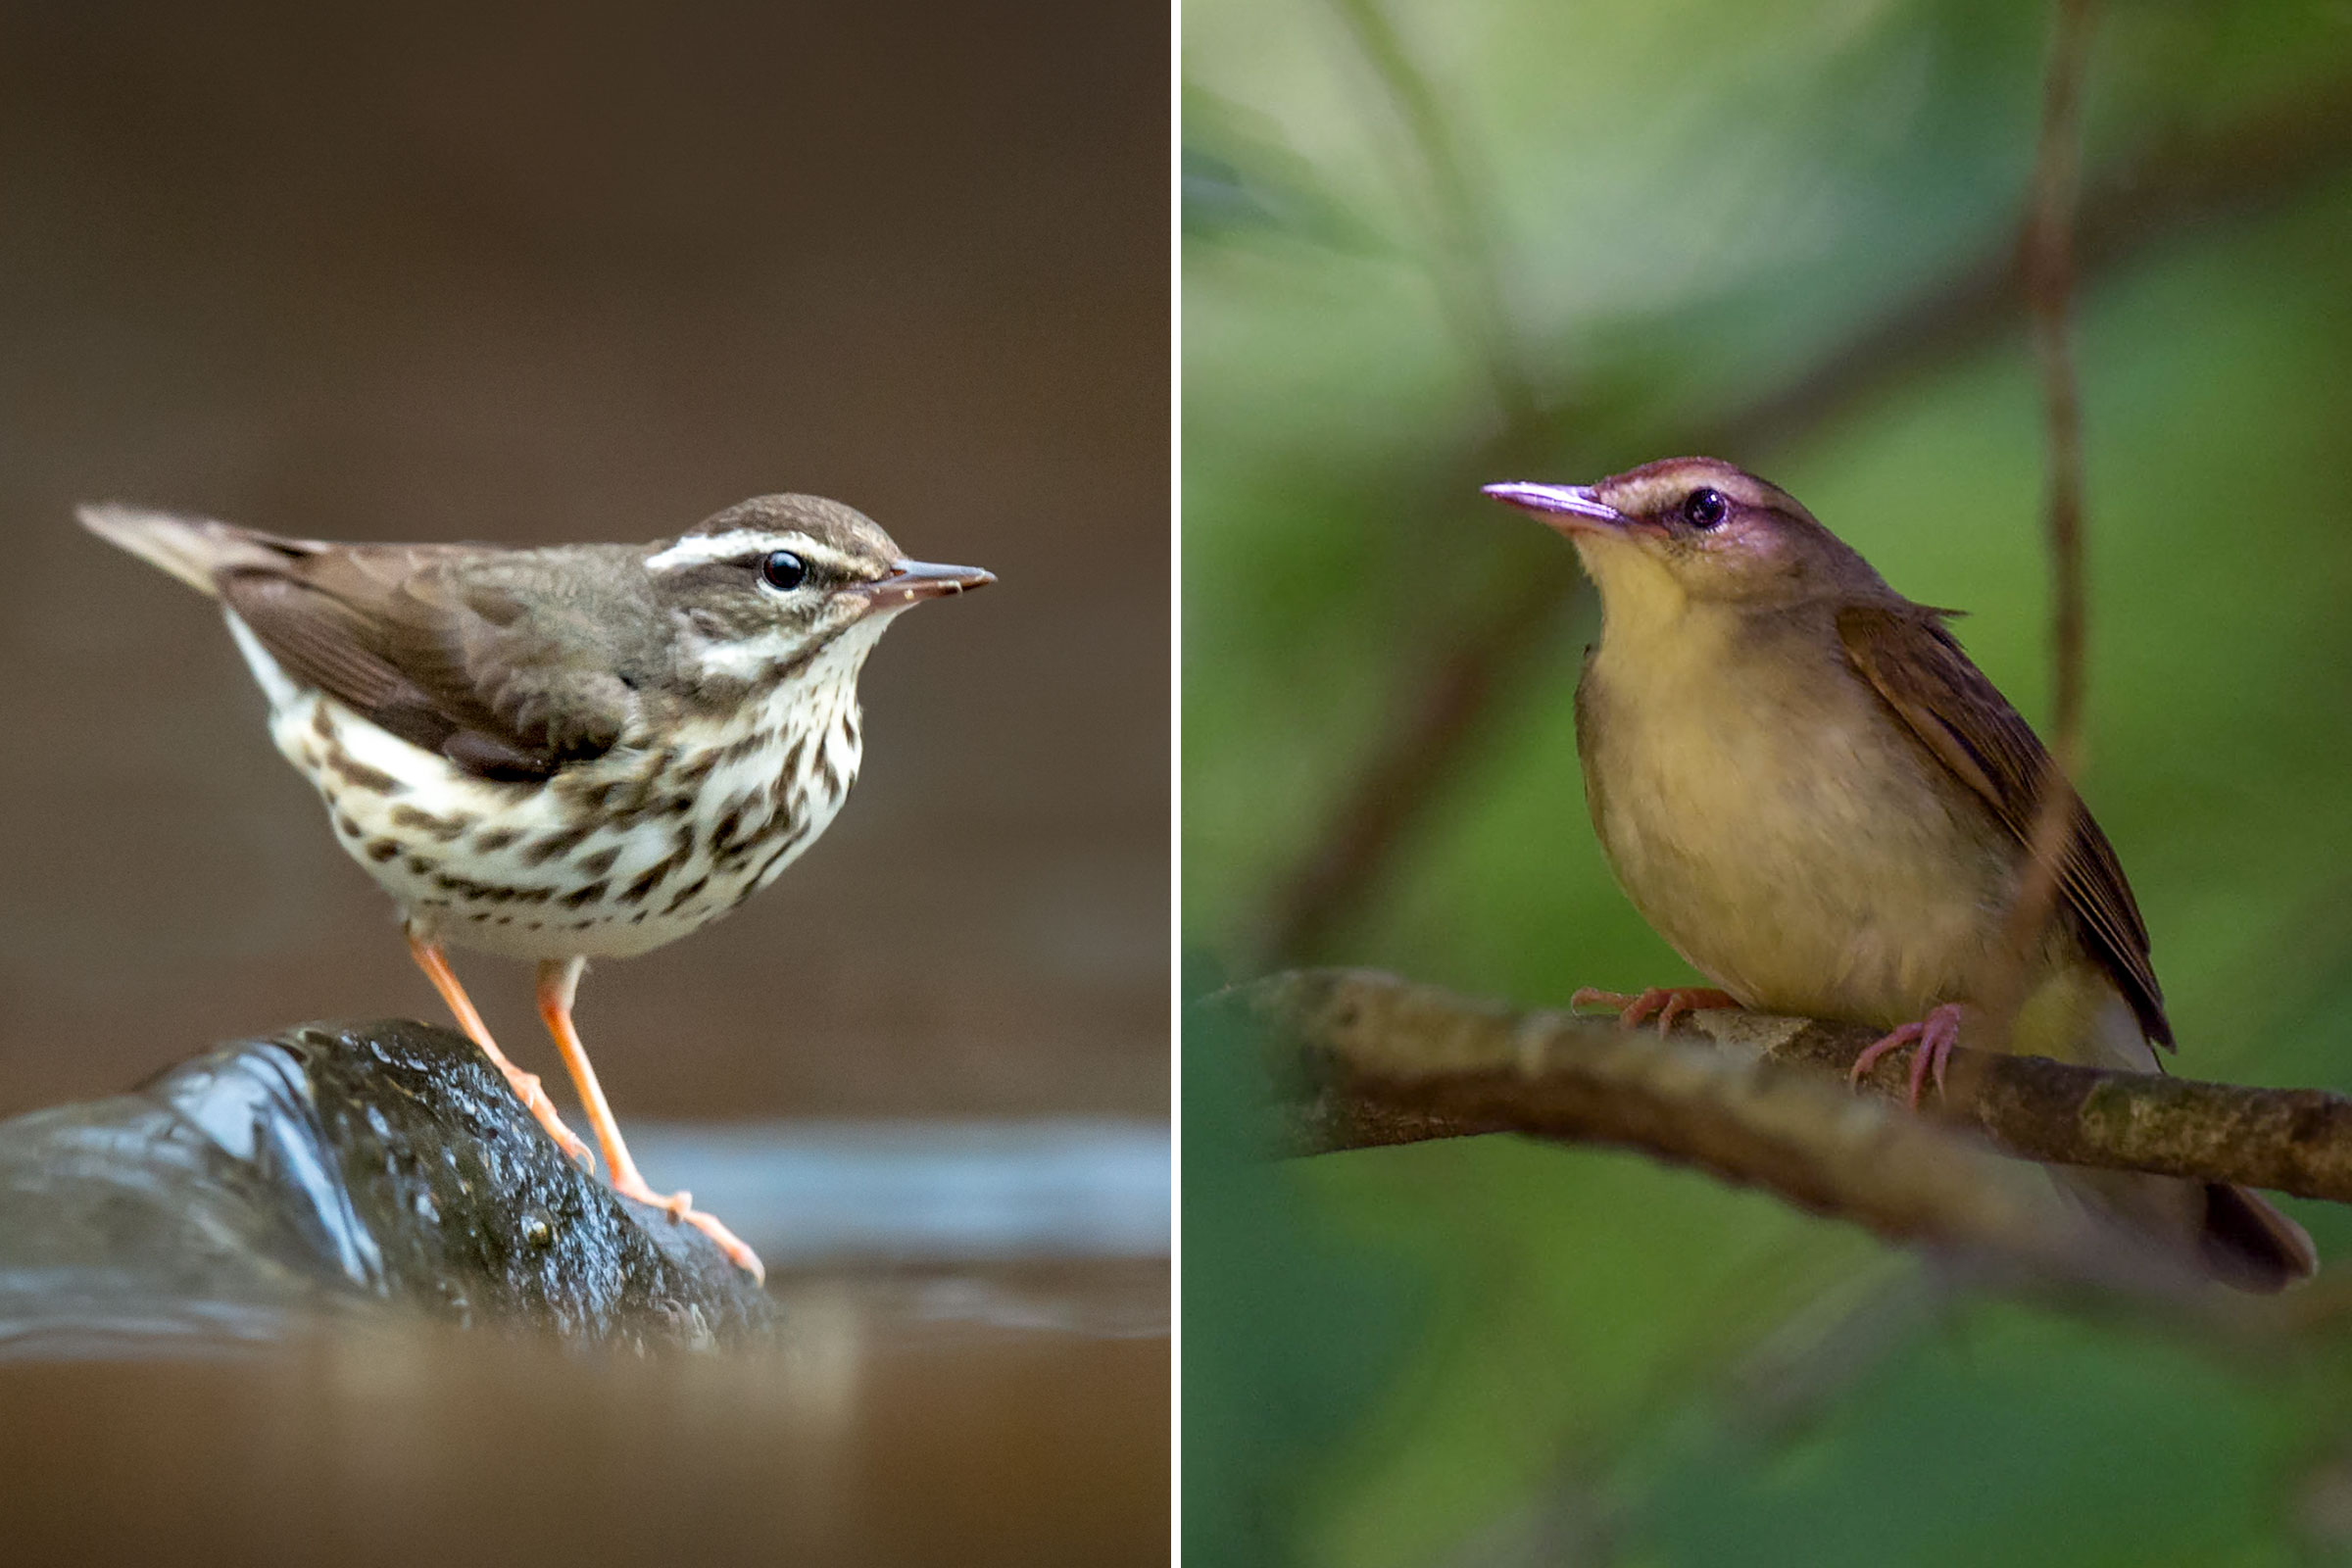 Photos from left: Louisiana Waterthrush, Ray Hennessy/iStock; Swainson's Warbler, Andy Reago & Chrissy McClarren/Flickr (CC BY 2.0)